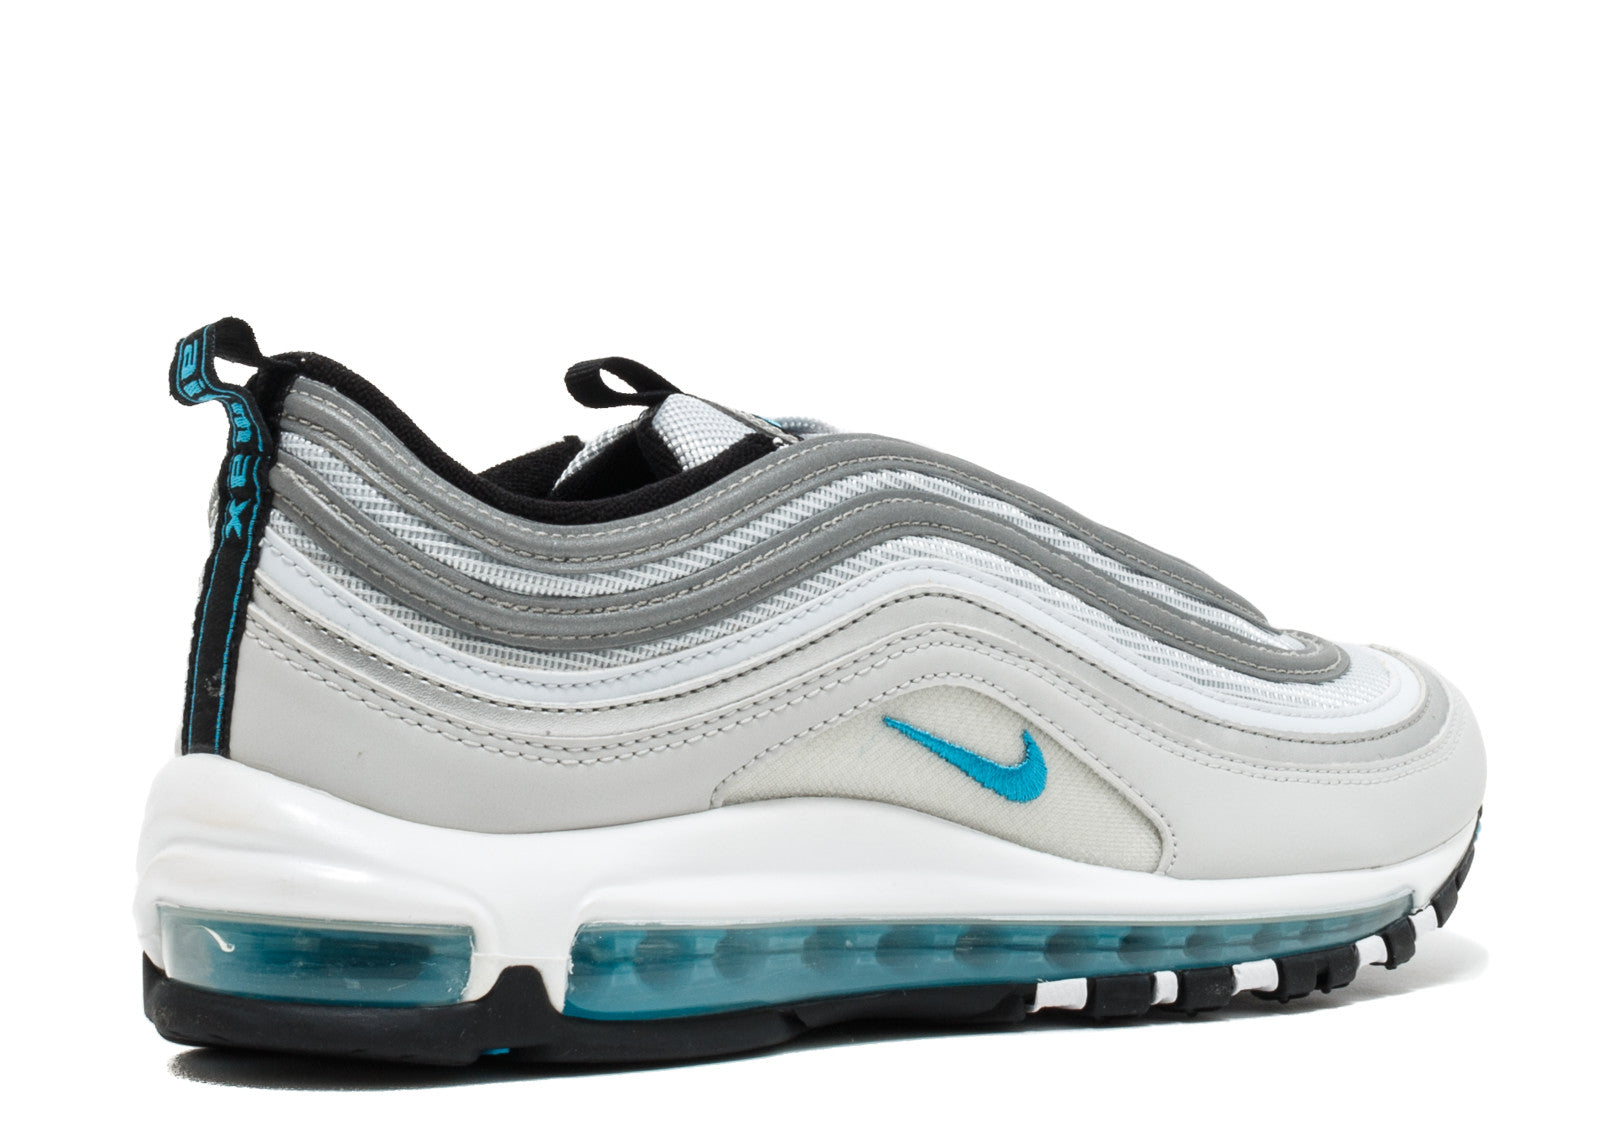 Nike Air Max 97 QS 'Marina Blue'